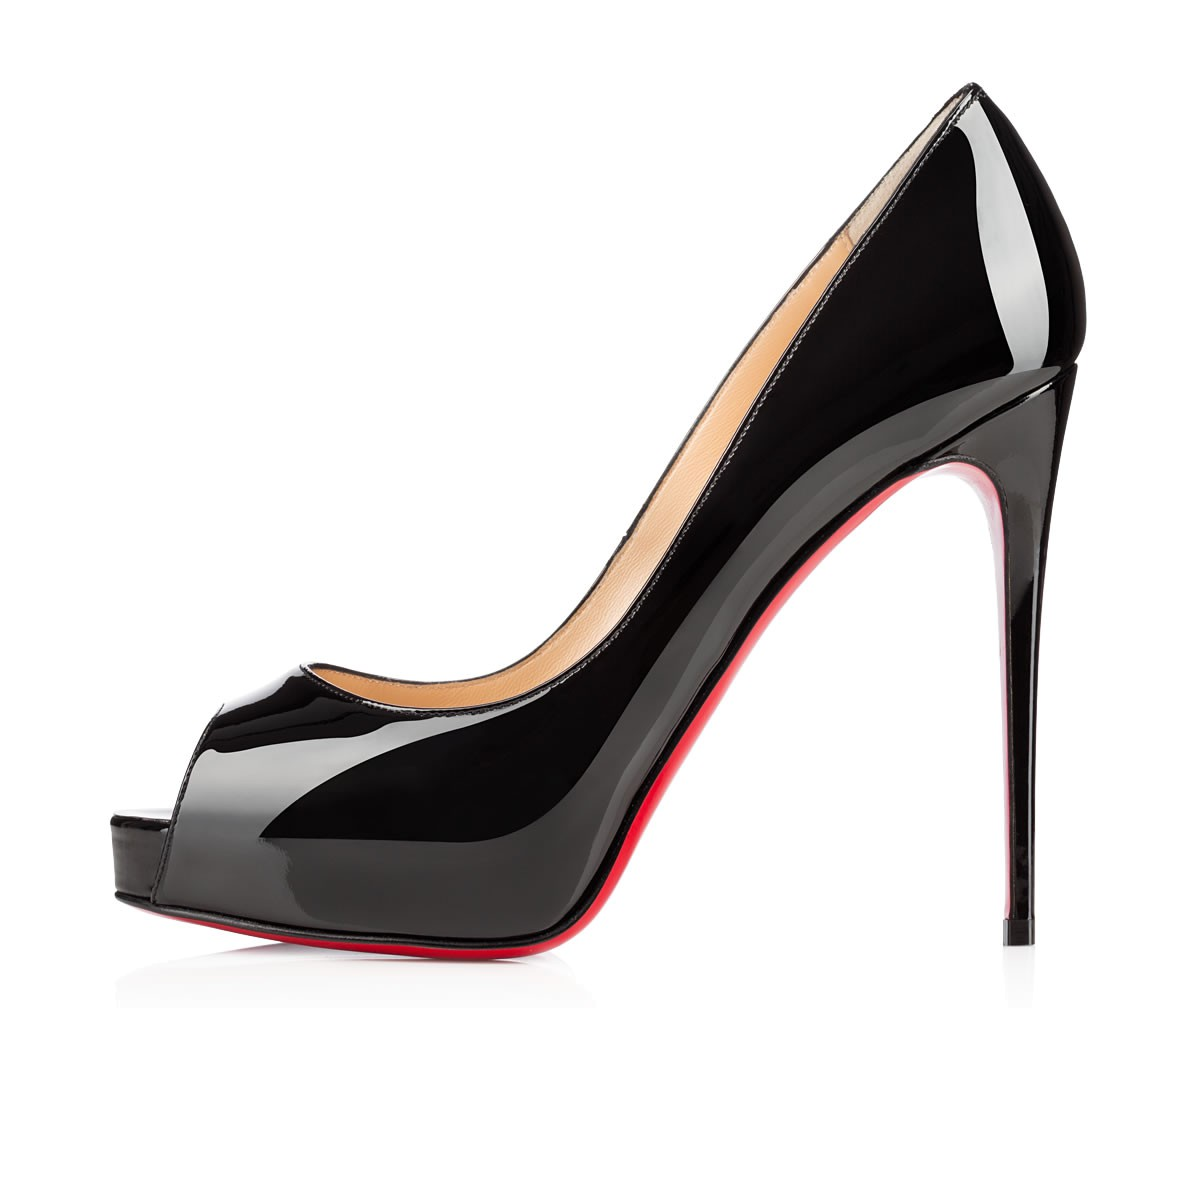 09a8dc85590 New Very Prive 120 Black Patent Leather - Women Shoes - Christian Louboutin